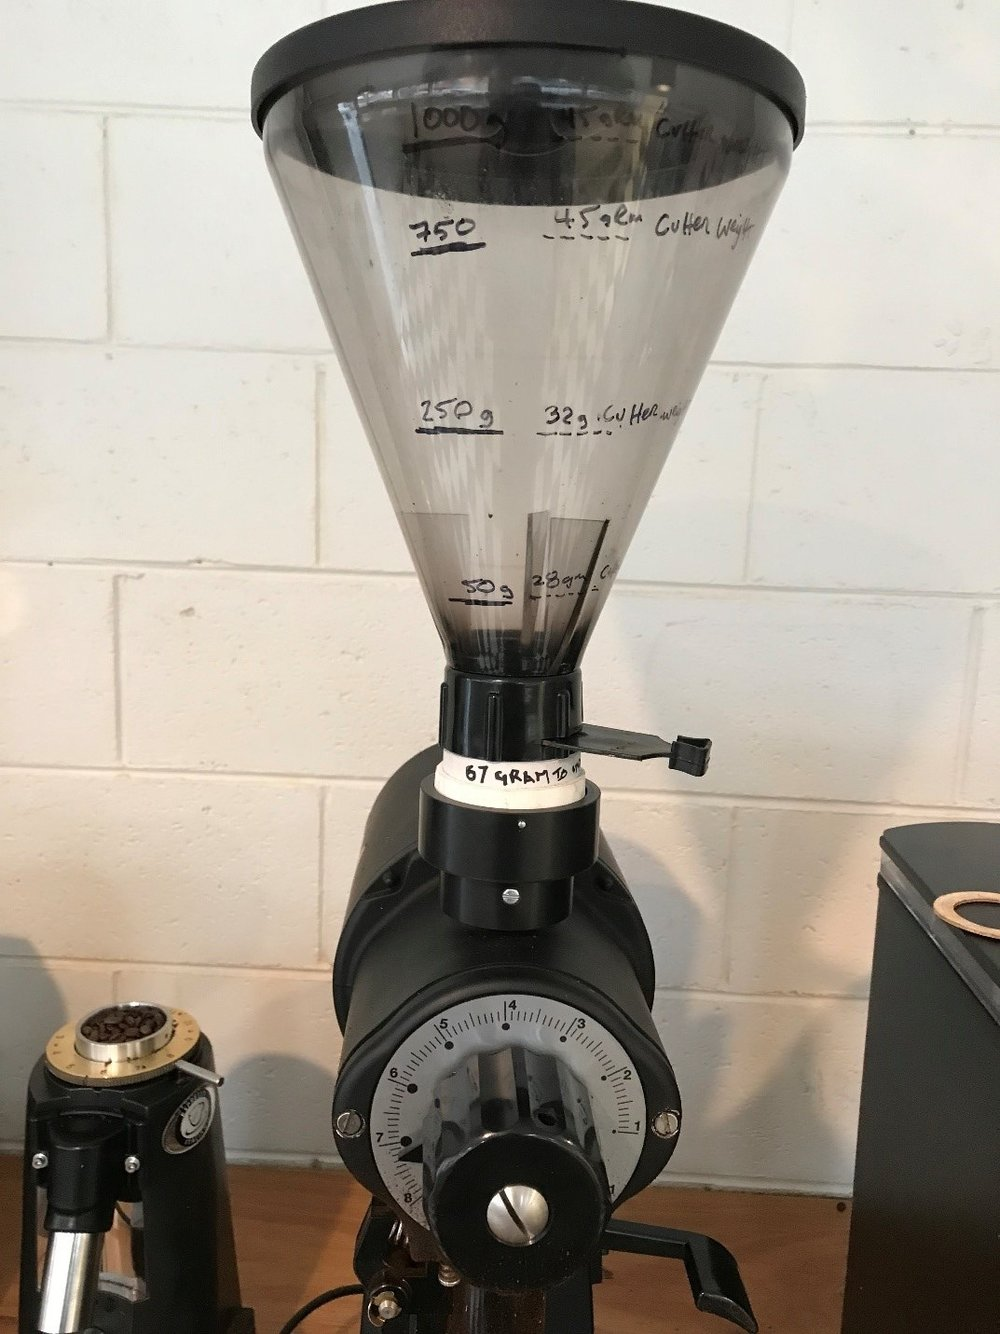 """Figure 7.    The Bush and Bush, Test rig. Markings are placed on the grinder hopper of a """"Gino Rossi conical hopper"""" to indicate when the hopper empties. This then tells us when we must top up beans so as not to change the weight on the Burrs and therefore a difference in grinding. We use this hopper on all of our grinders when testing burrs. And we make sure that the bean level is between 1000gram and 750gram lines at all times. In this way we can have confidence that bean/burr weight is not affecting the particle size and distribution of the resultant ground coffee."""